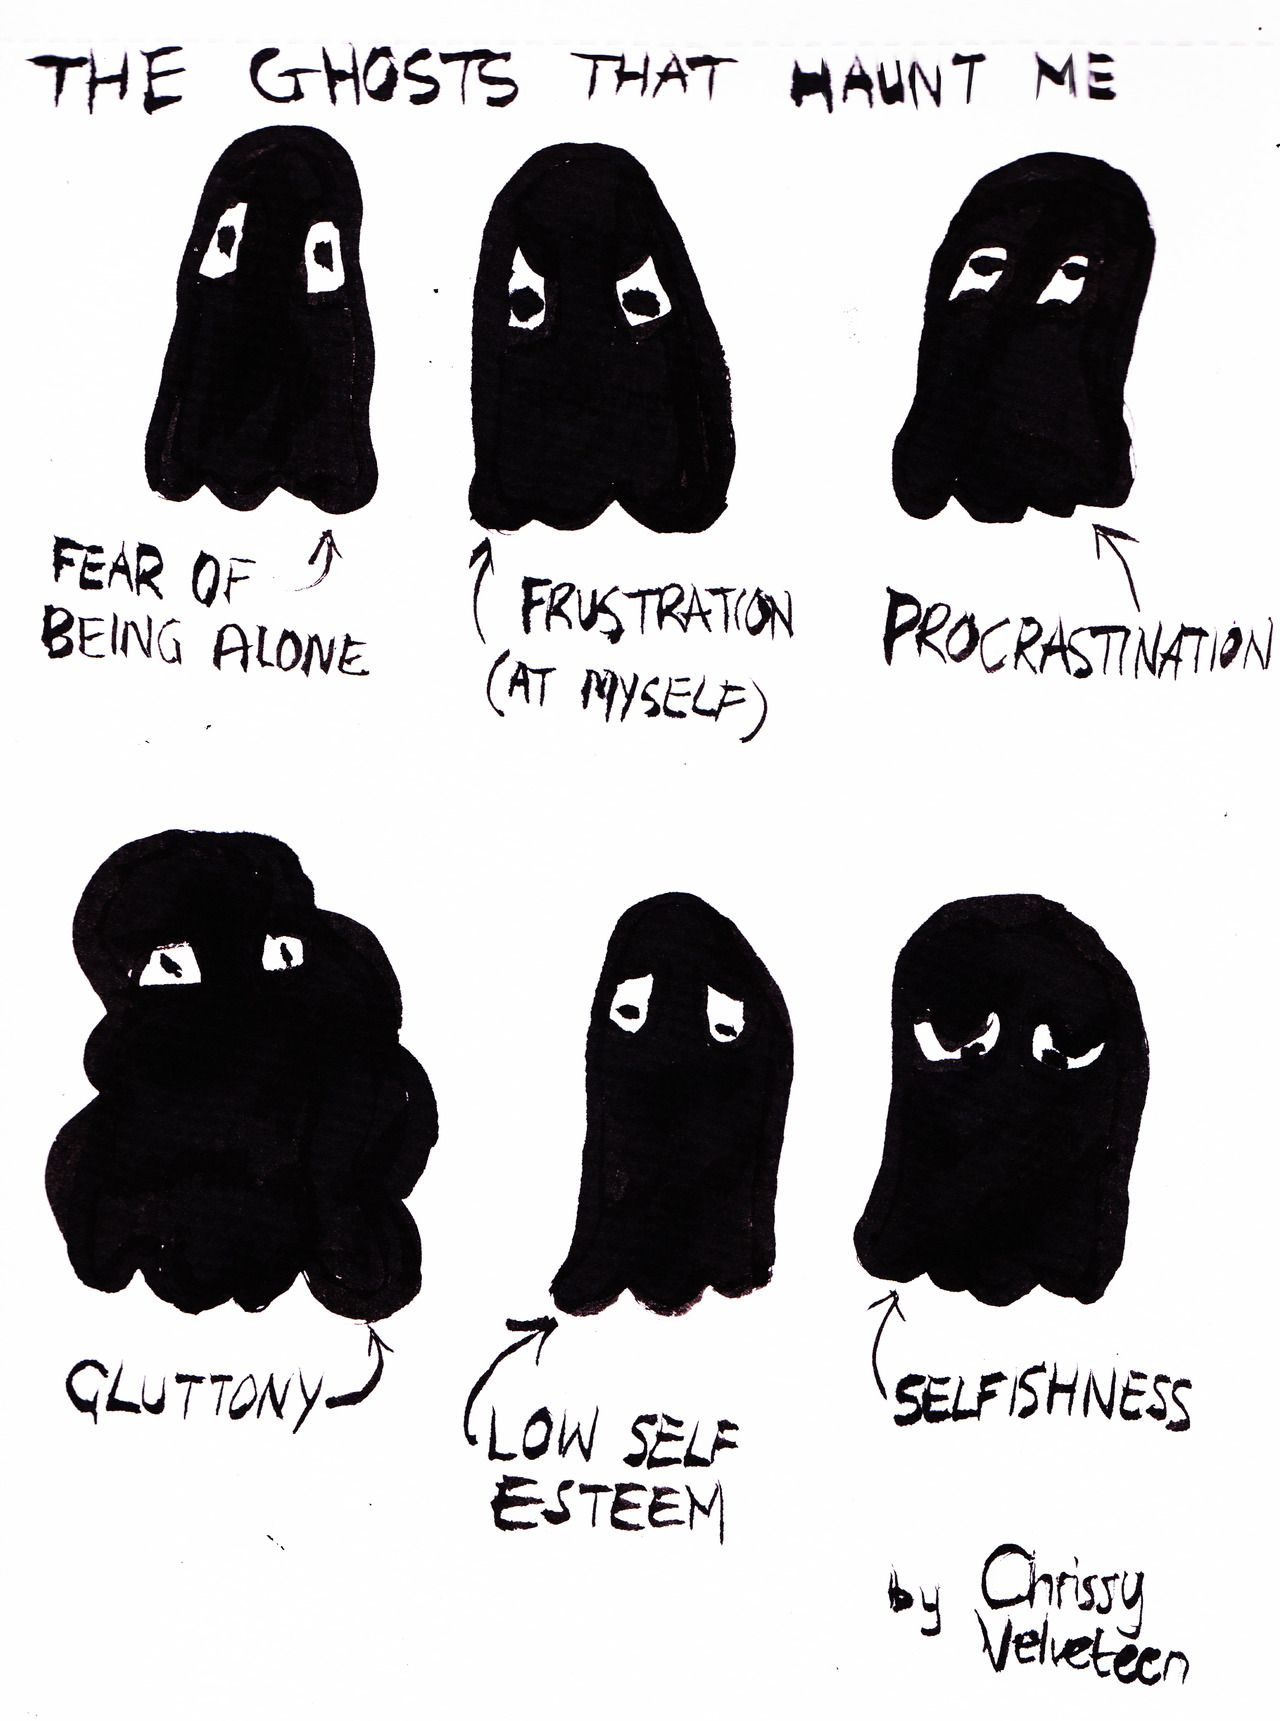 Idea Drawing Representations Of Ghosts That Haunt You Can Be Literal Or Abstract Art